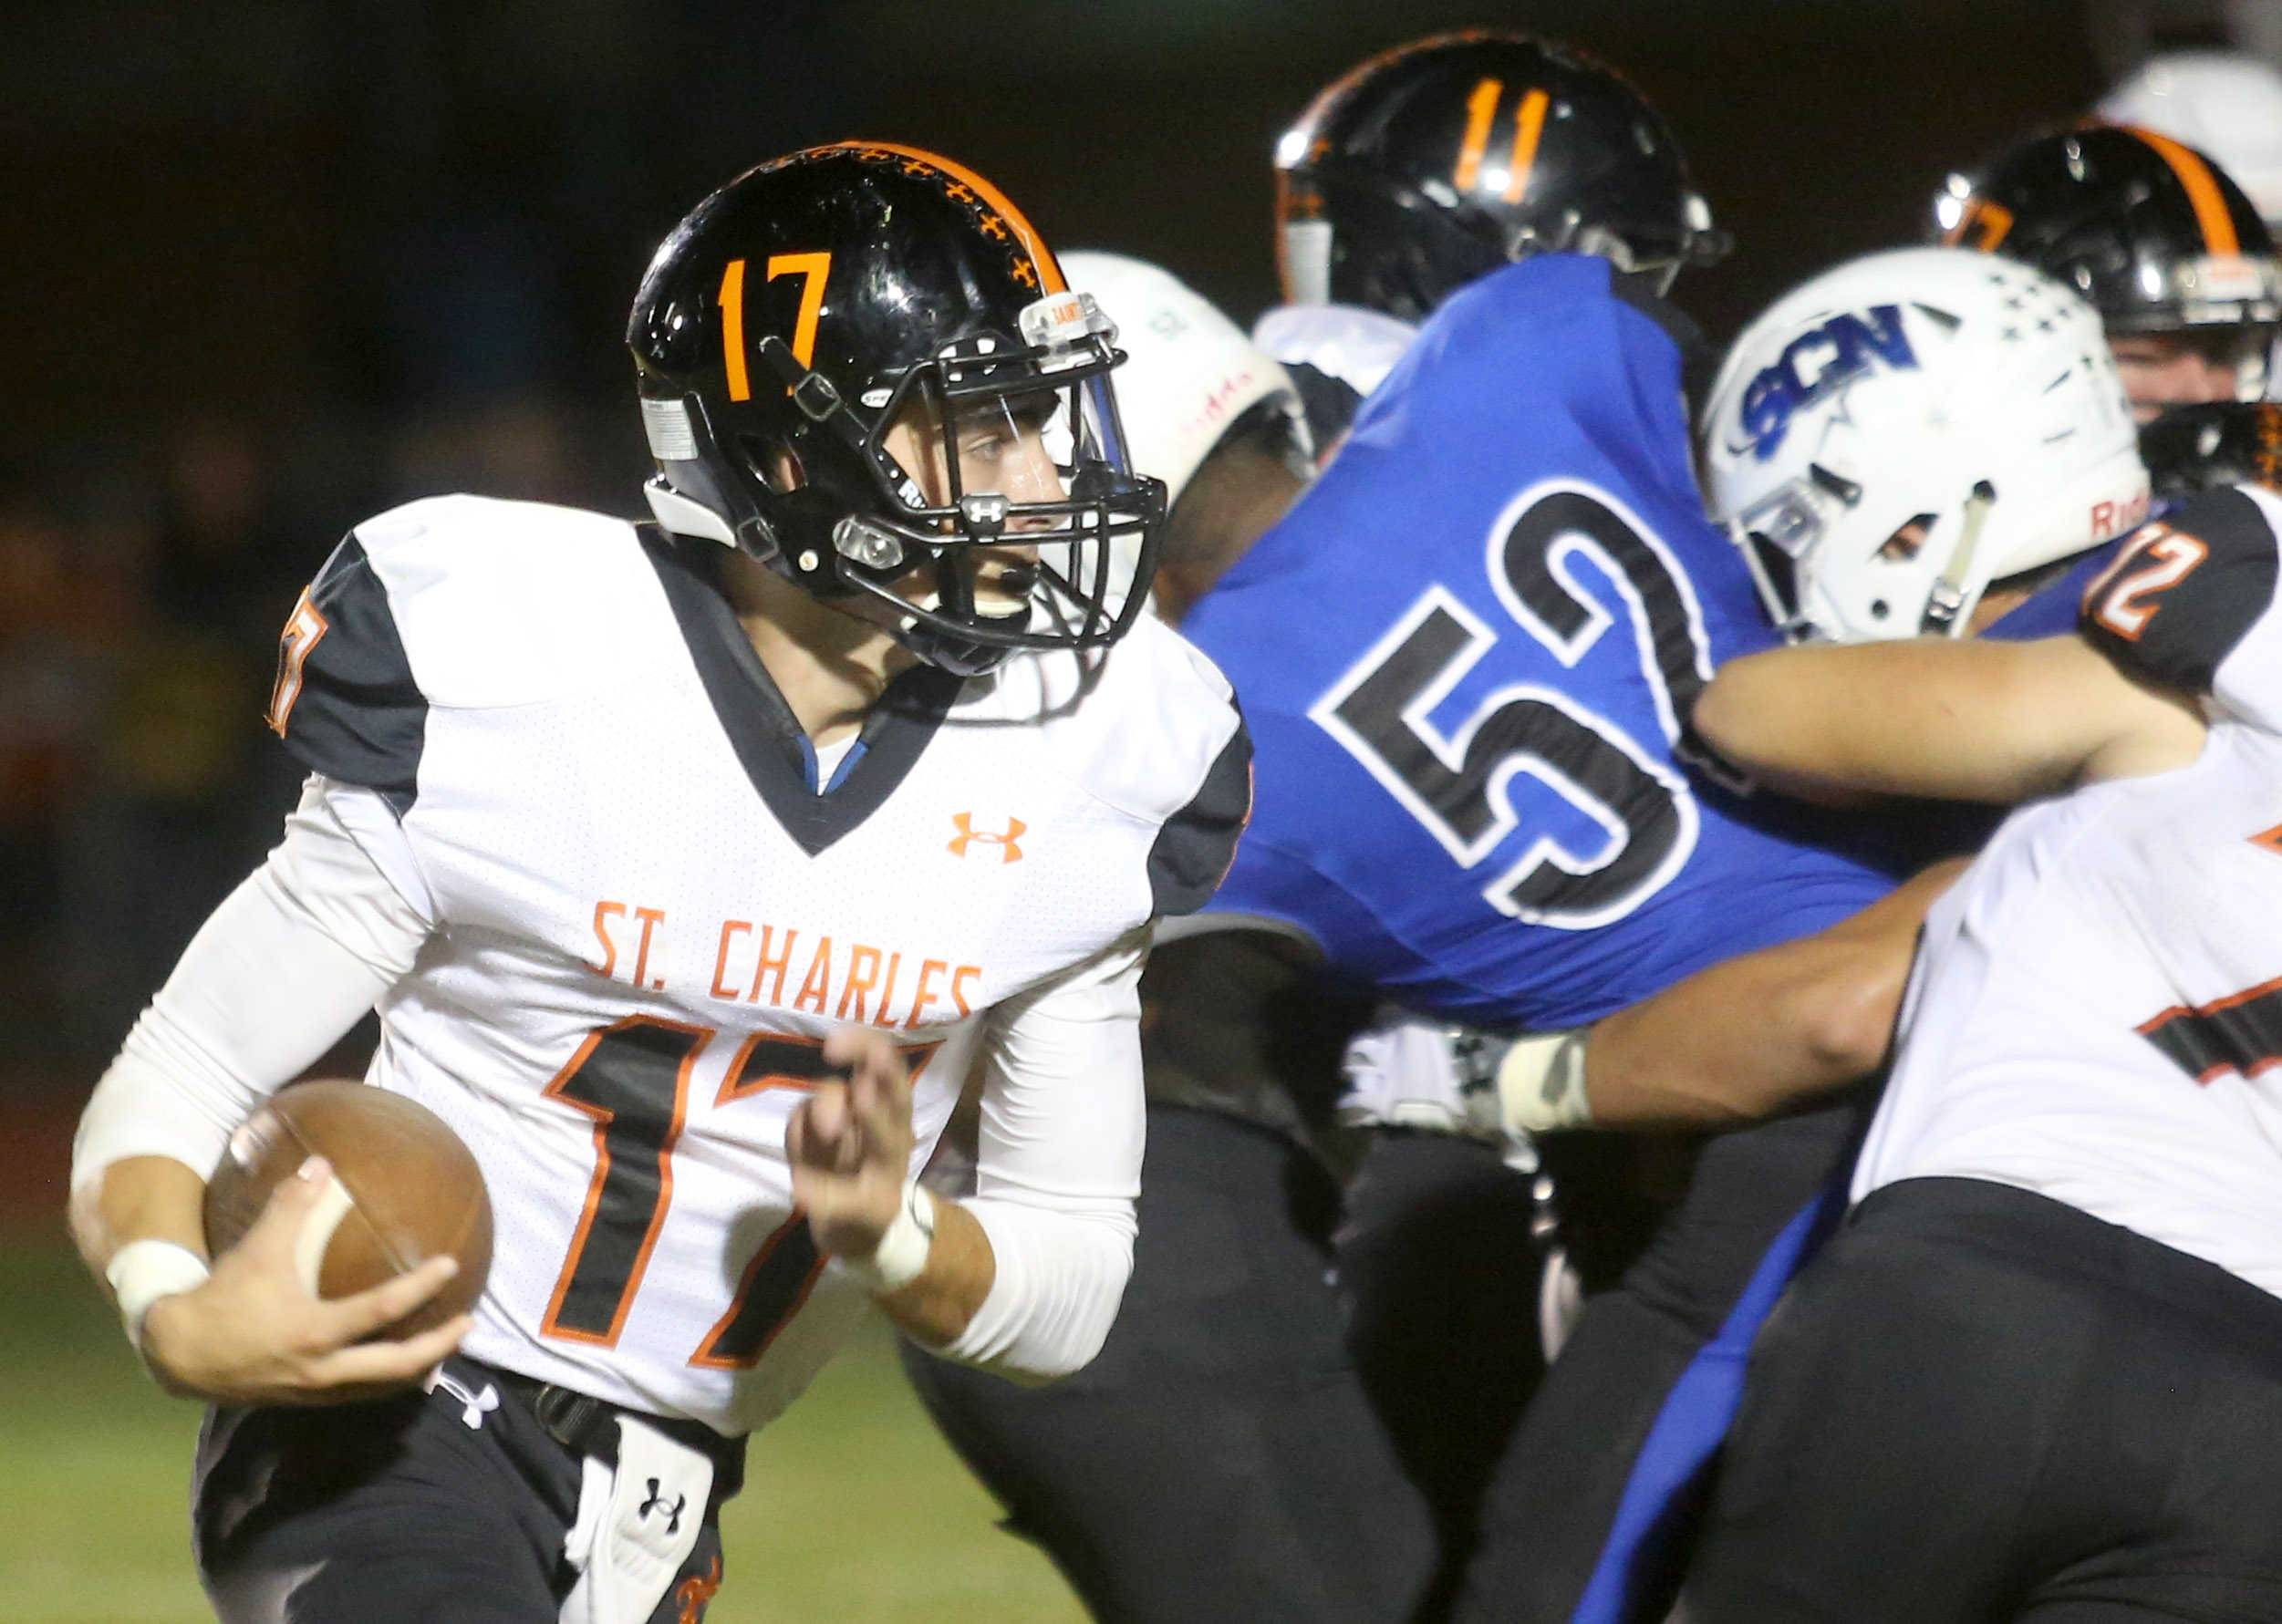 St. Charles East and quarterback Zachary Mitchell travel to Palatine Saturday for a Class 8A quarterfinal.